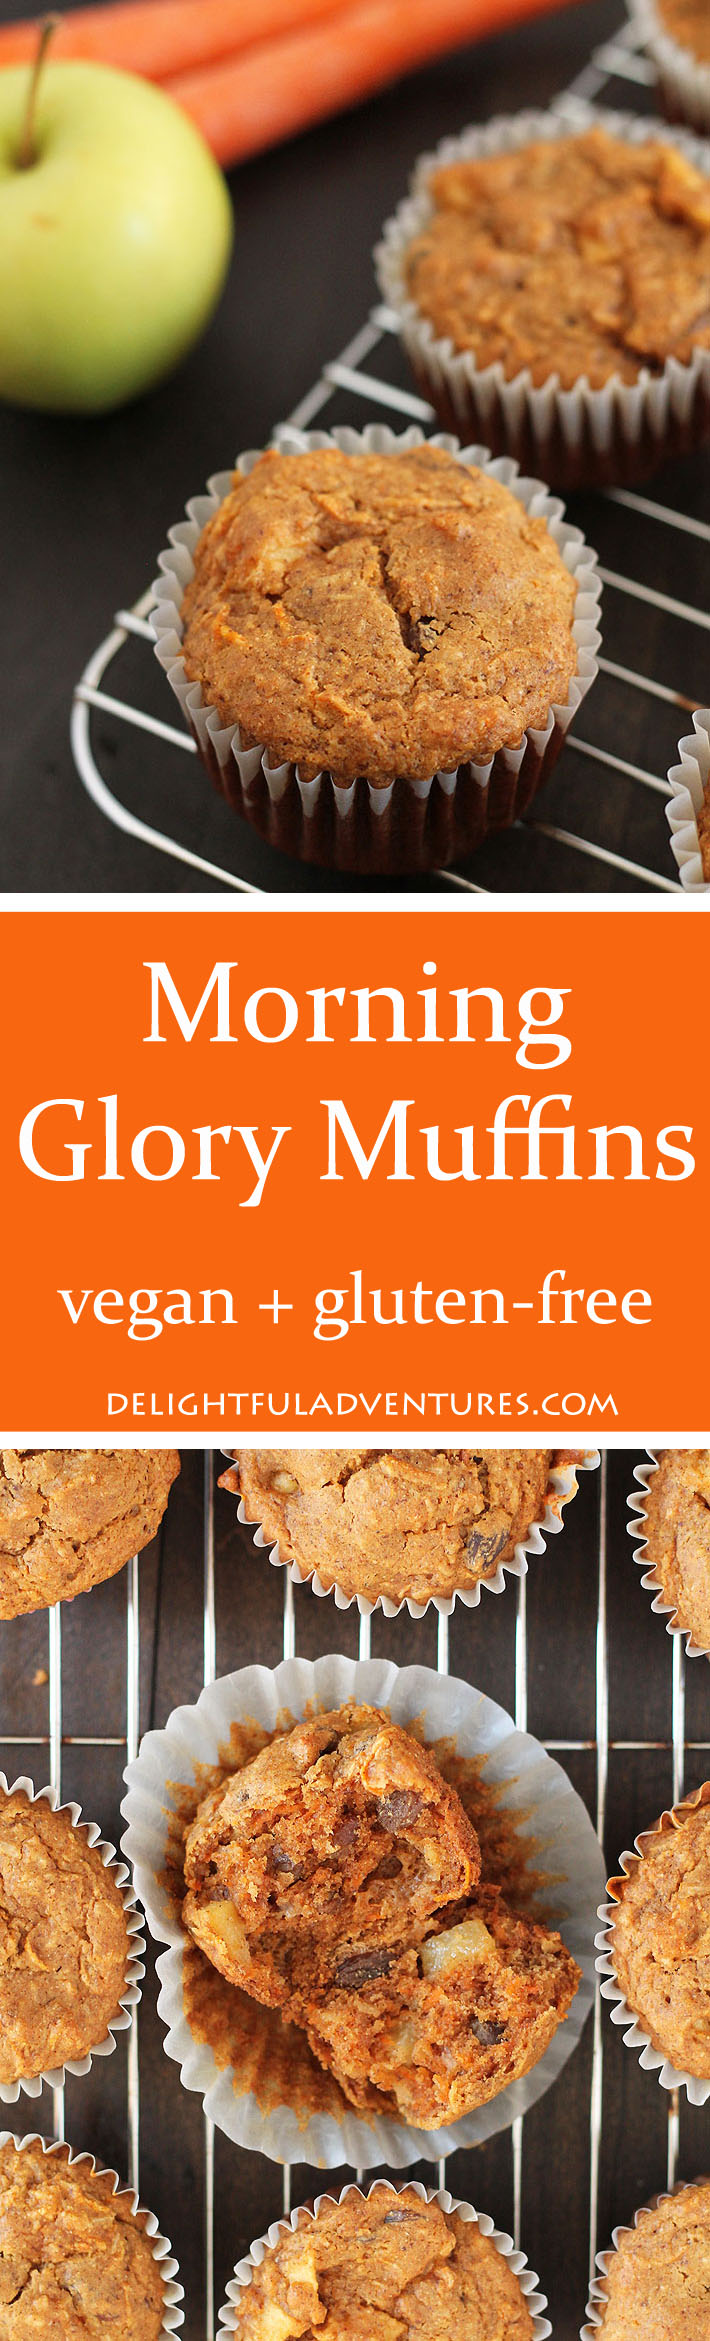 Healthy Vegan Gluten Free Morning Glory Muffins loaded with carrots, coconut, raisins, and apples. Perfect to have for breakfast or a snack.